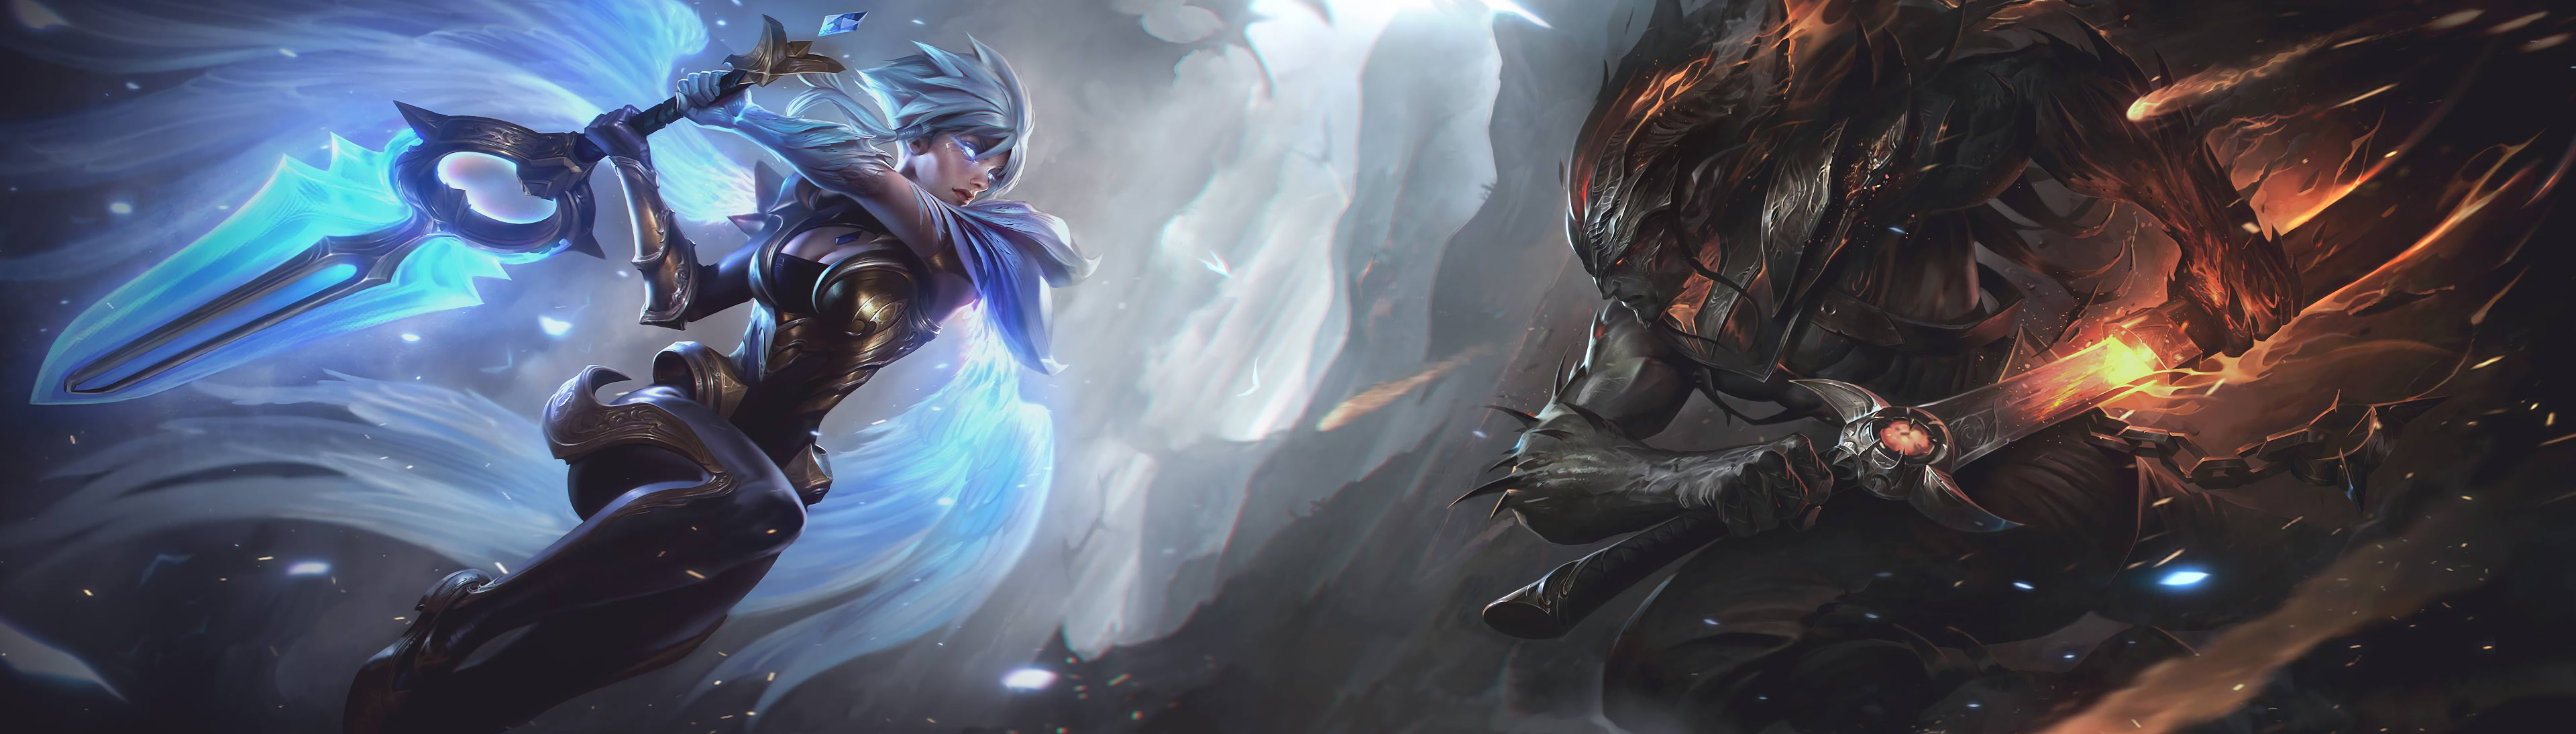 3840x1094 Dawnbringer Riven & Nightbringer Yasuo Combined Splash Art HD Wallpaper  Artwork League of Legends (2